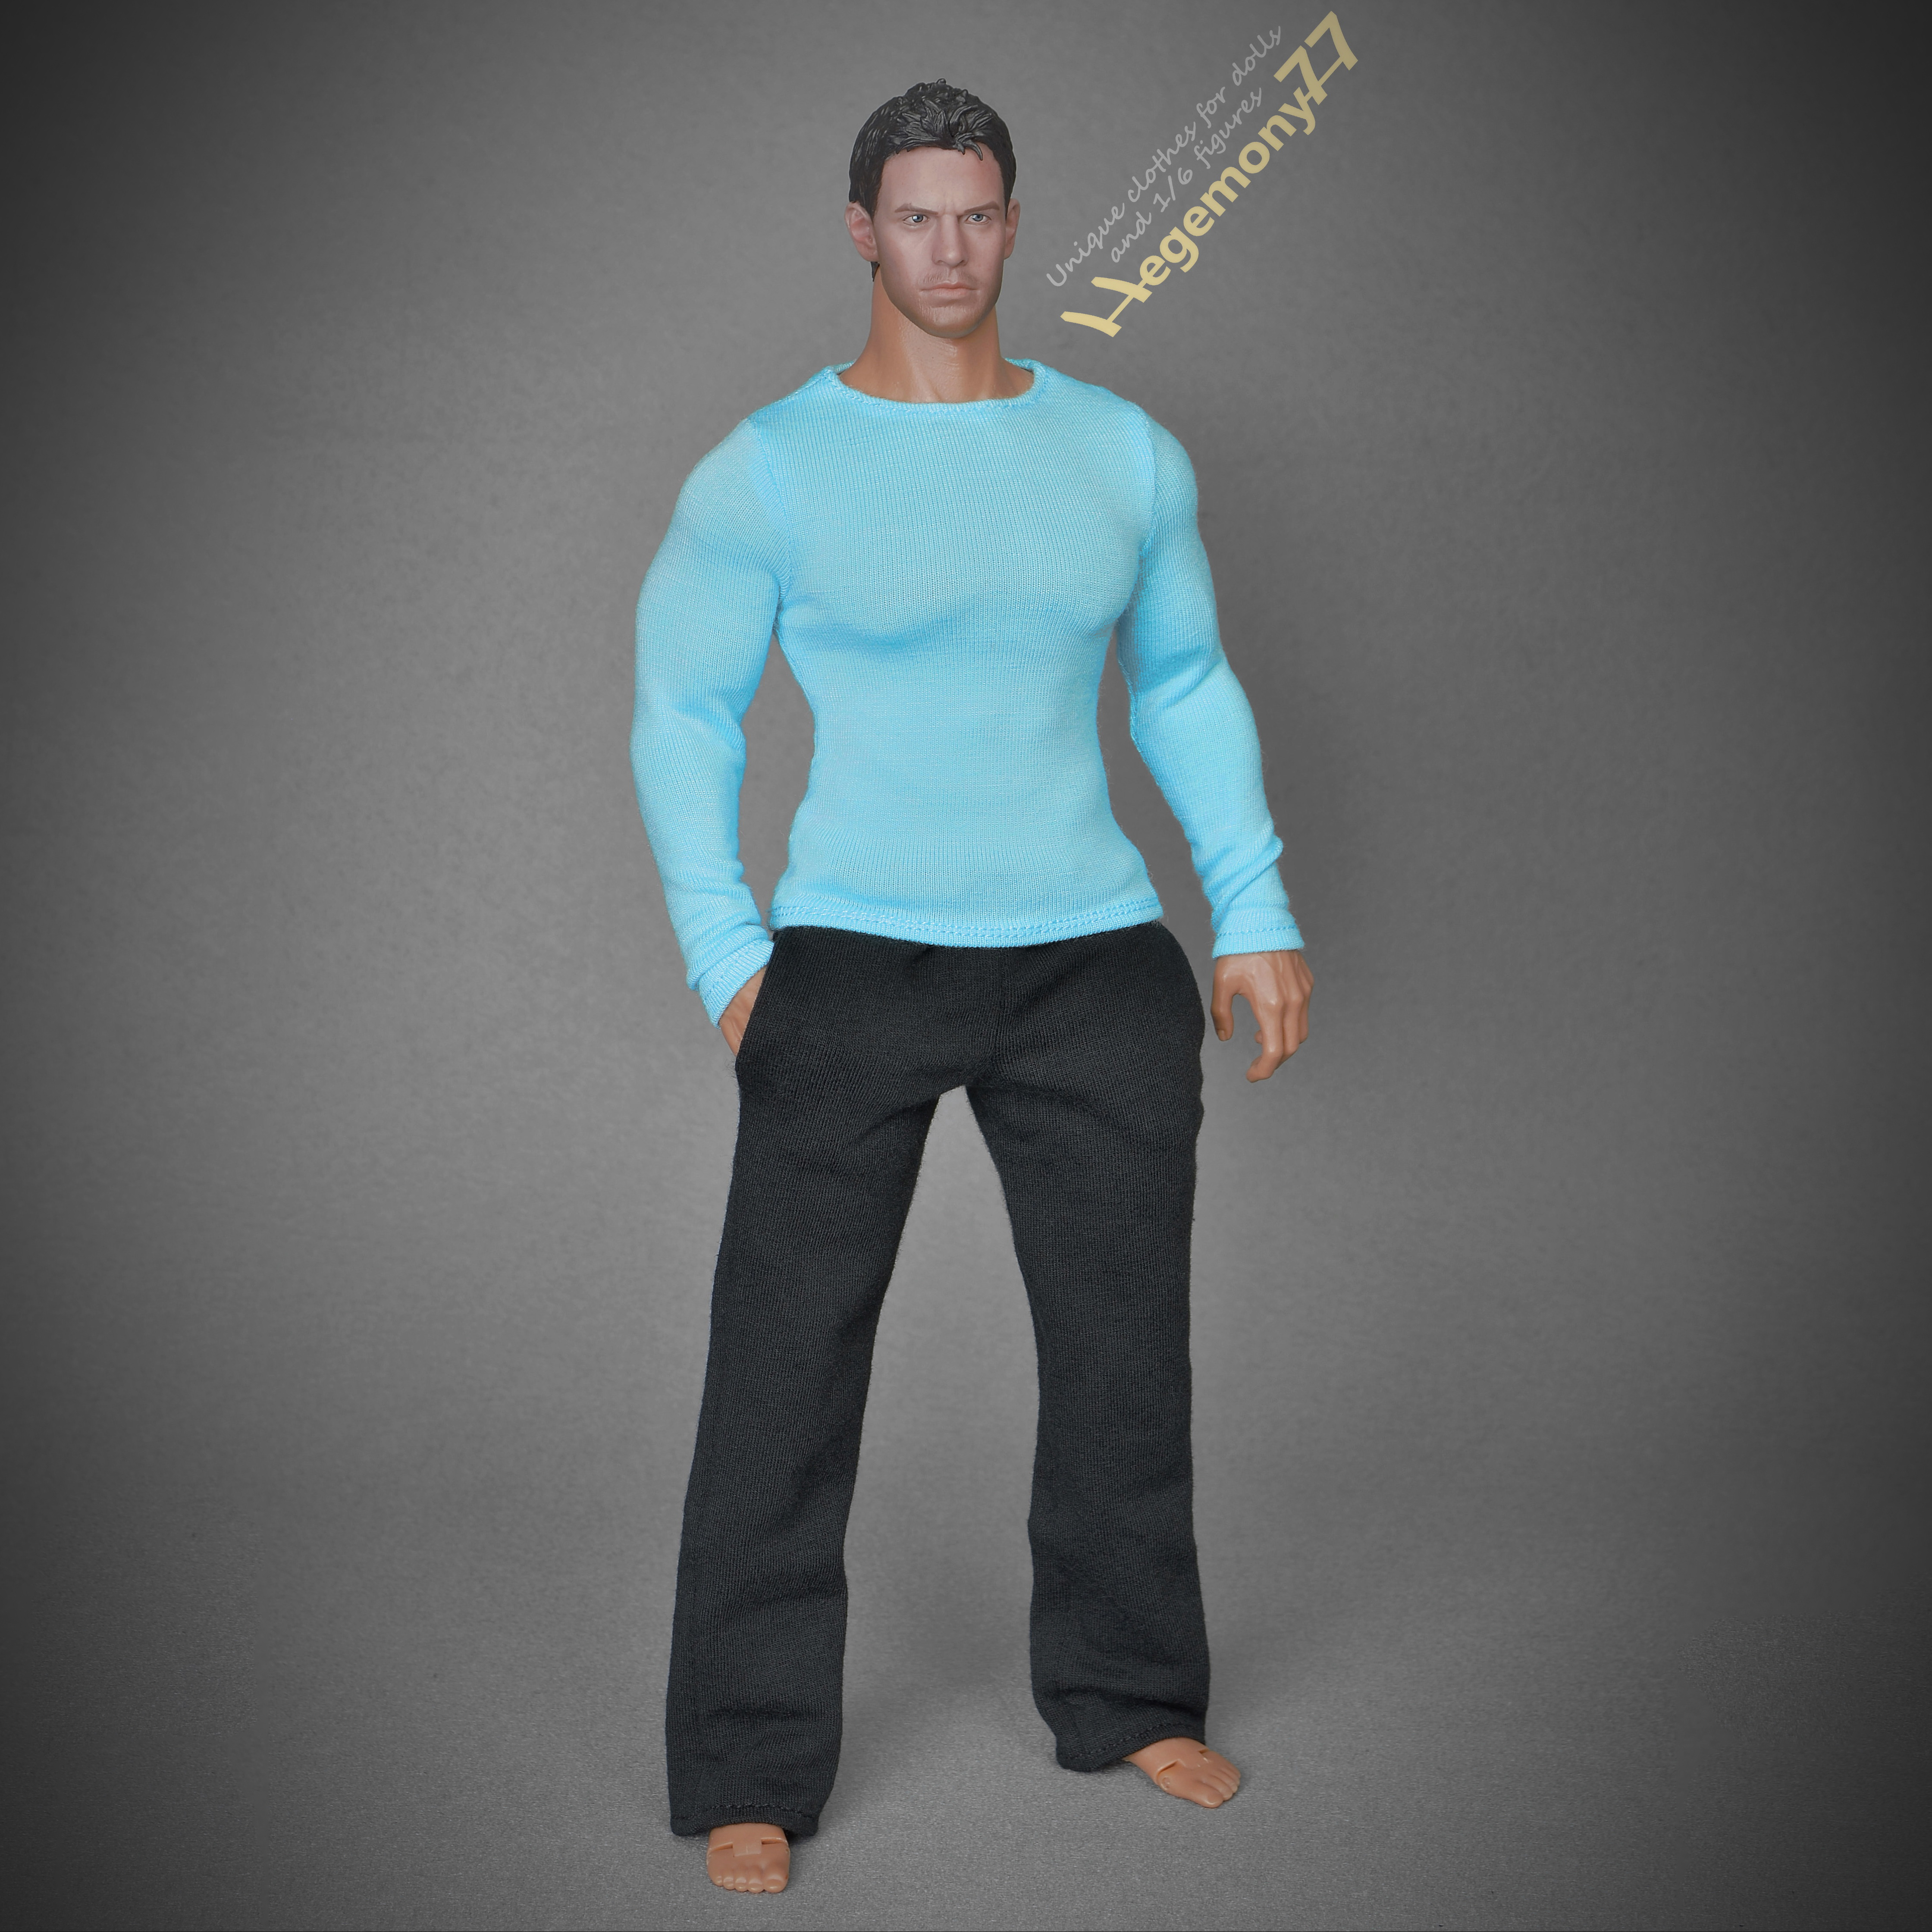 39e6e2bdd7967 1 6th scale extra large black sweatpants tracksuit bottoms and blue long  sleeves T shirt on